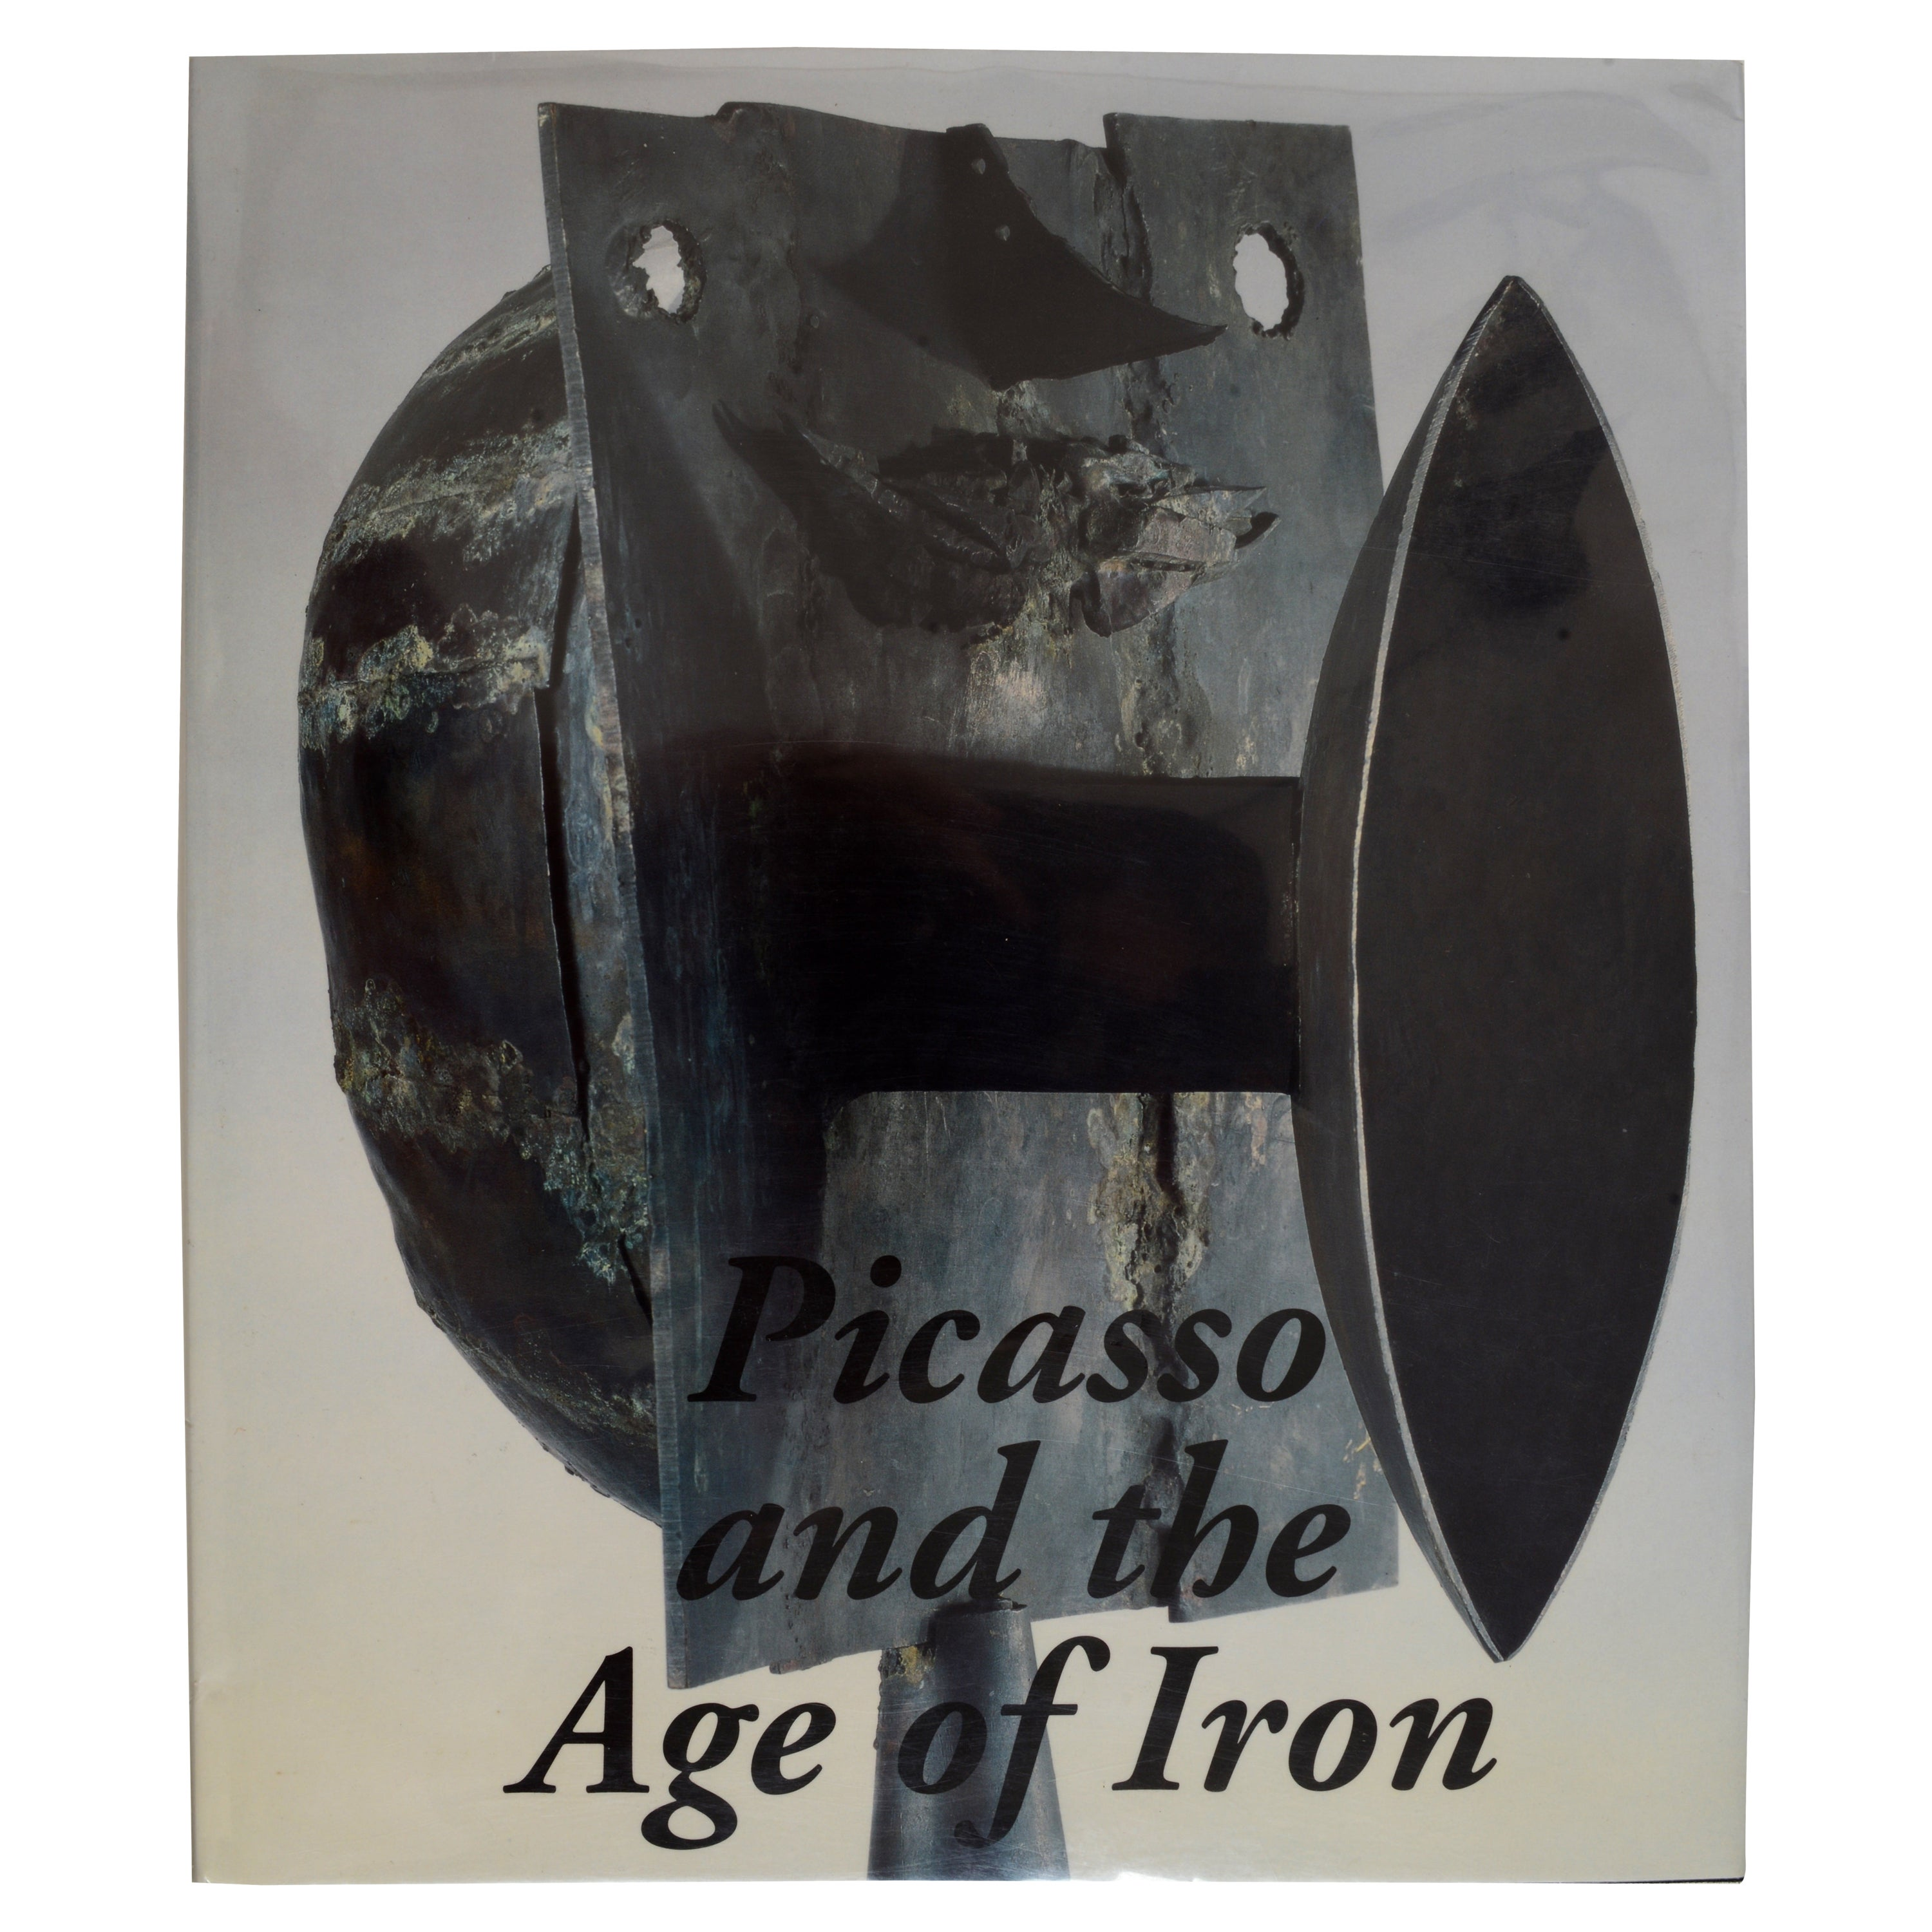 Picasso and the Age of Iron by Carmen Gimenez, Curator, 1st Ed